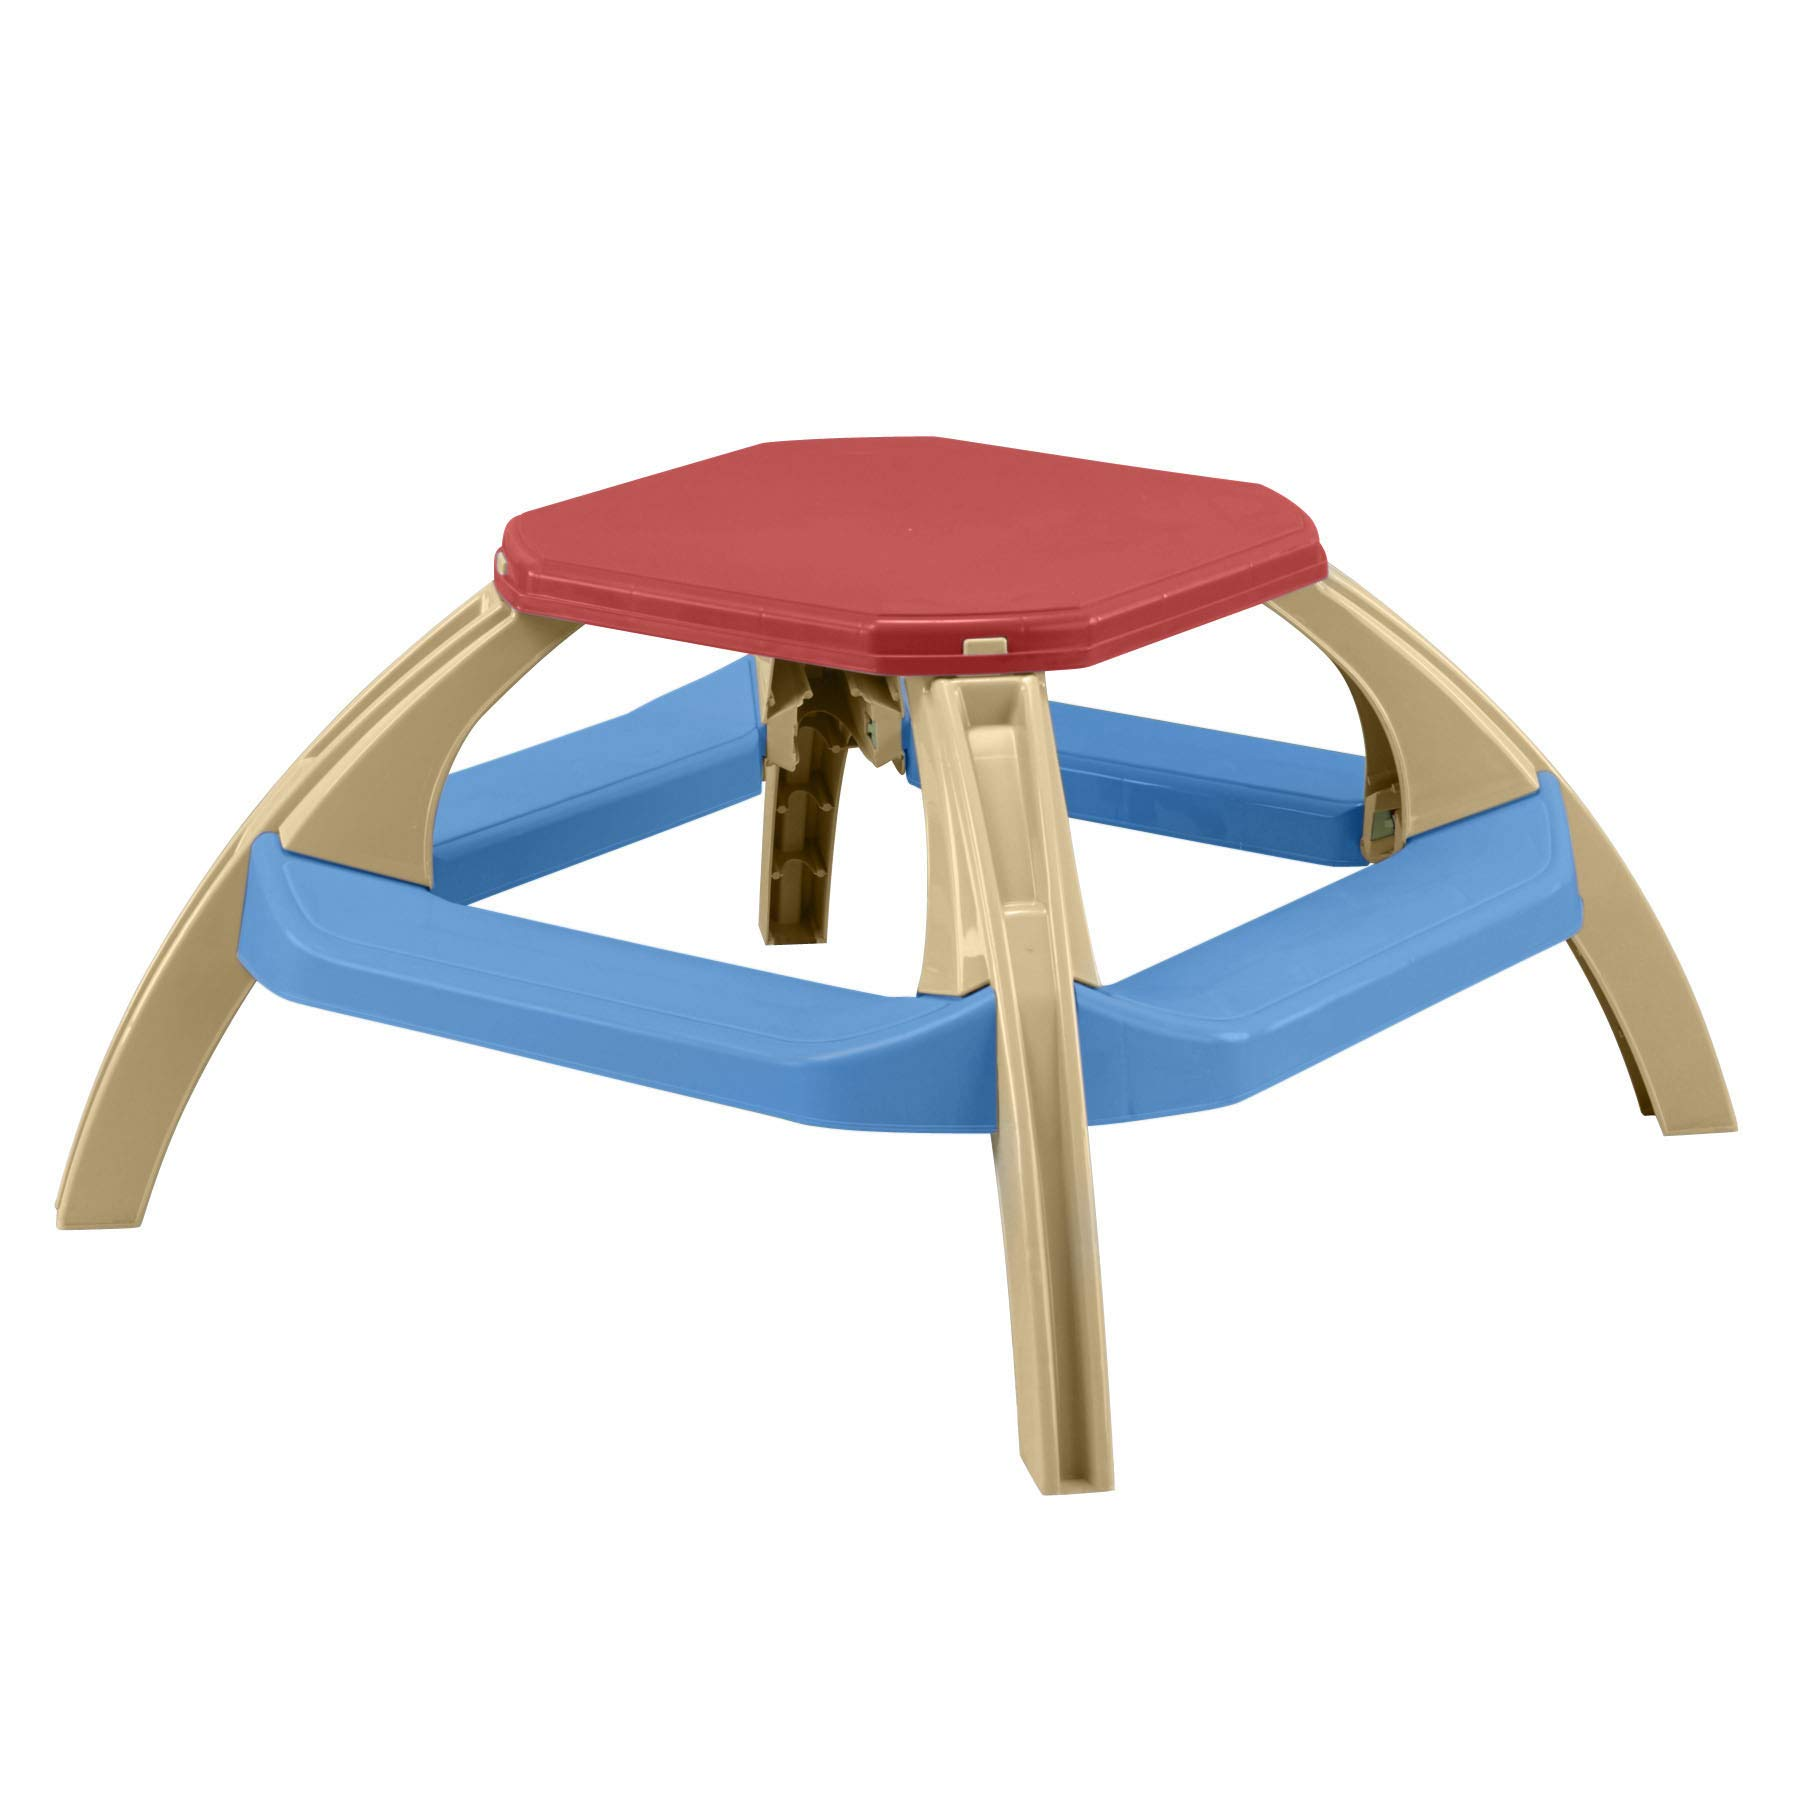 American Plastic Toys Kid's Picnic Table Playset